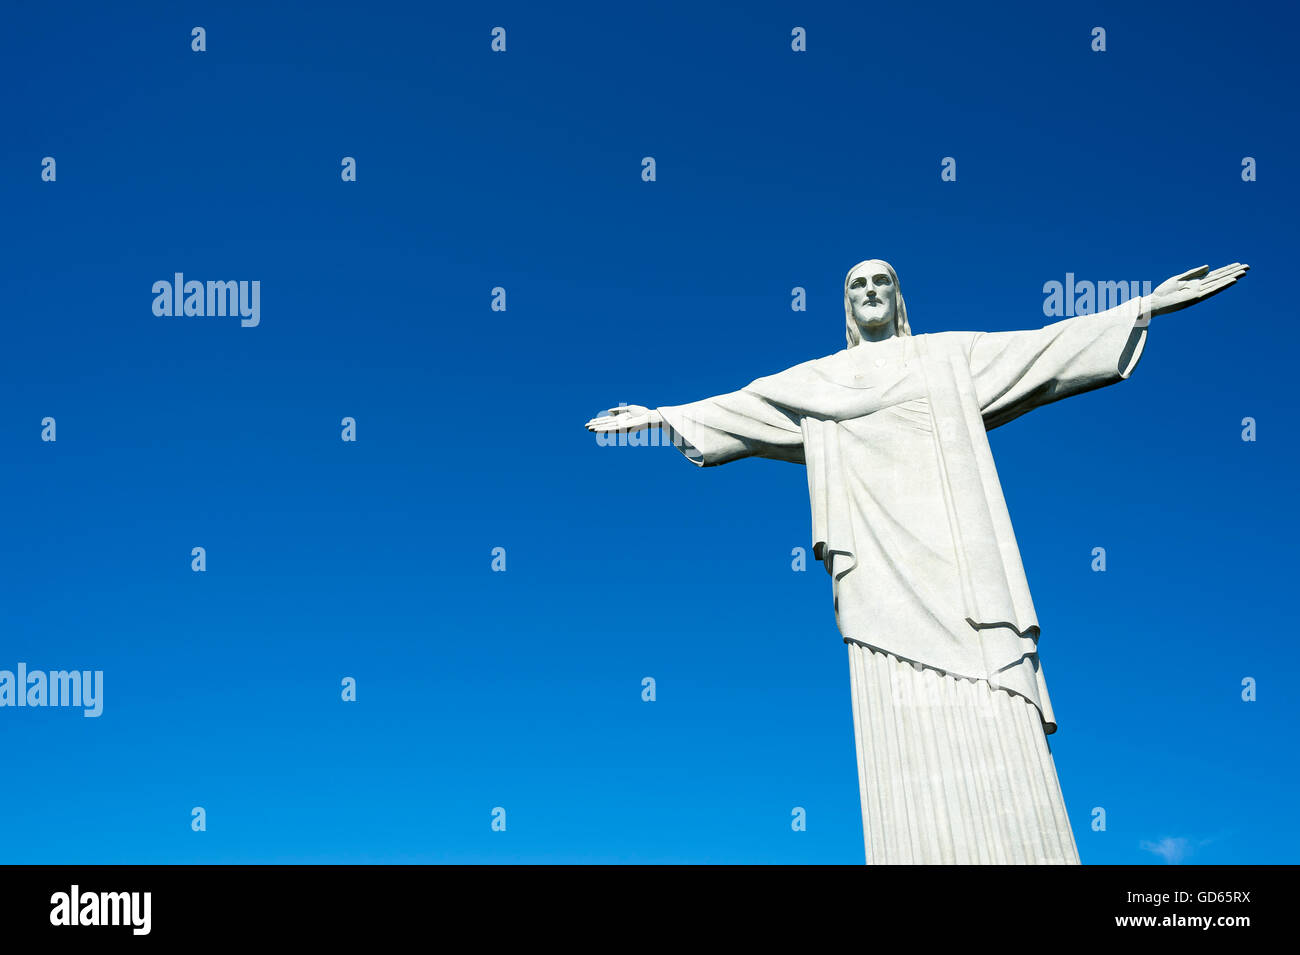 RIO DE JANEIRO - MARCH 05, 2016: Statue of Christ the Redeemer stands in clear blue sky in bright morning sun. - Stock Image